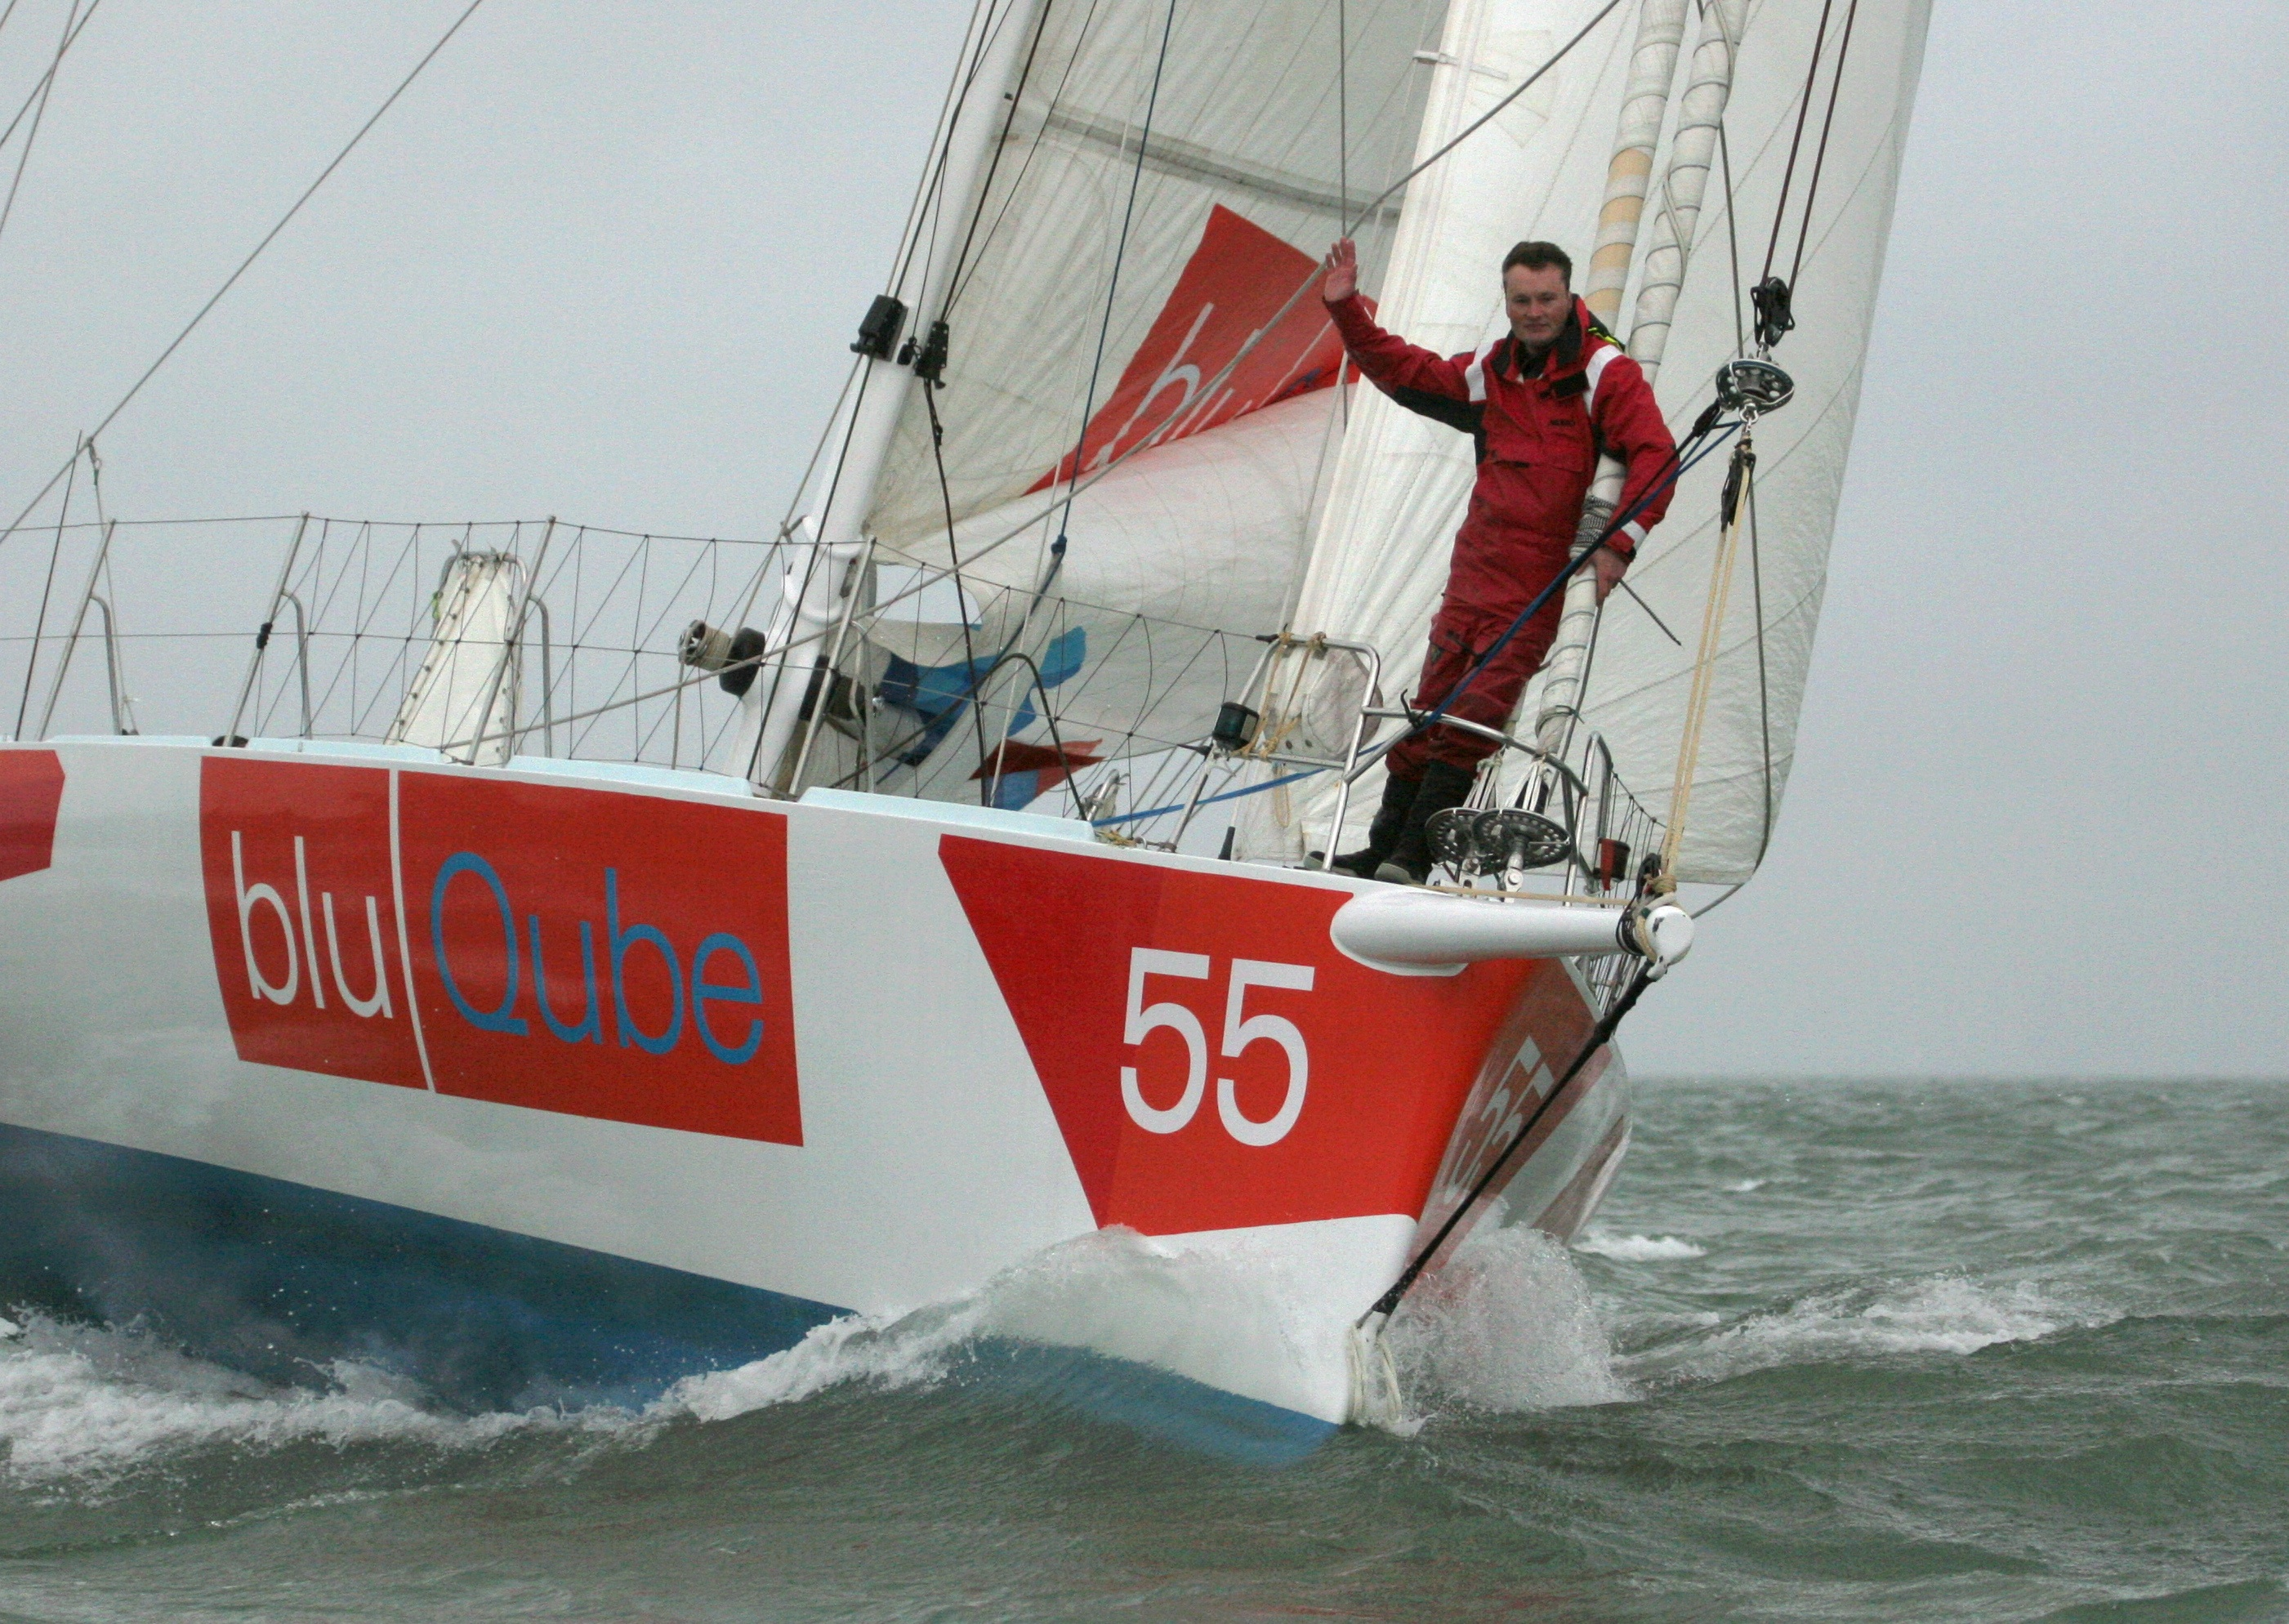 Win a sailing day with top solo sailor